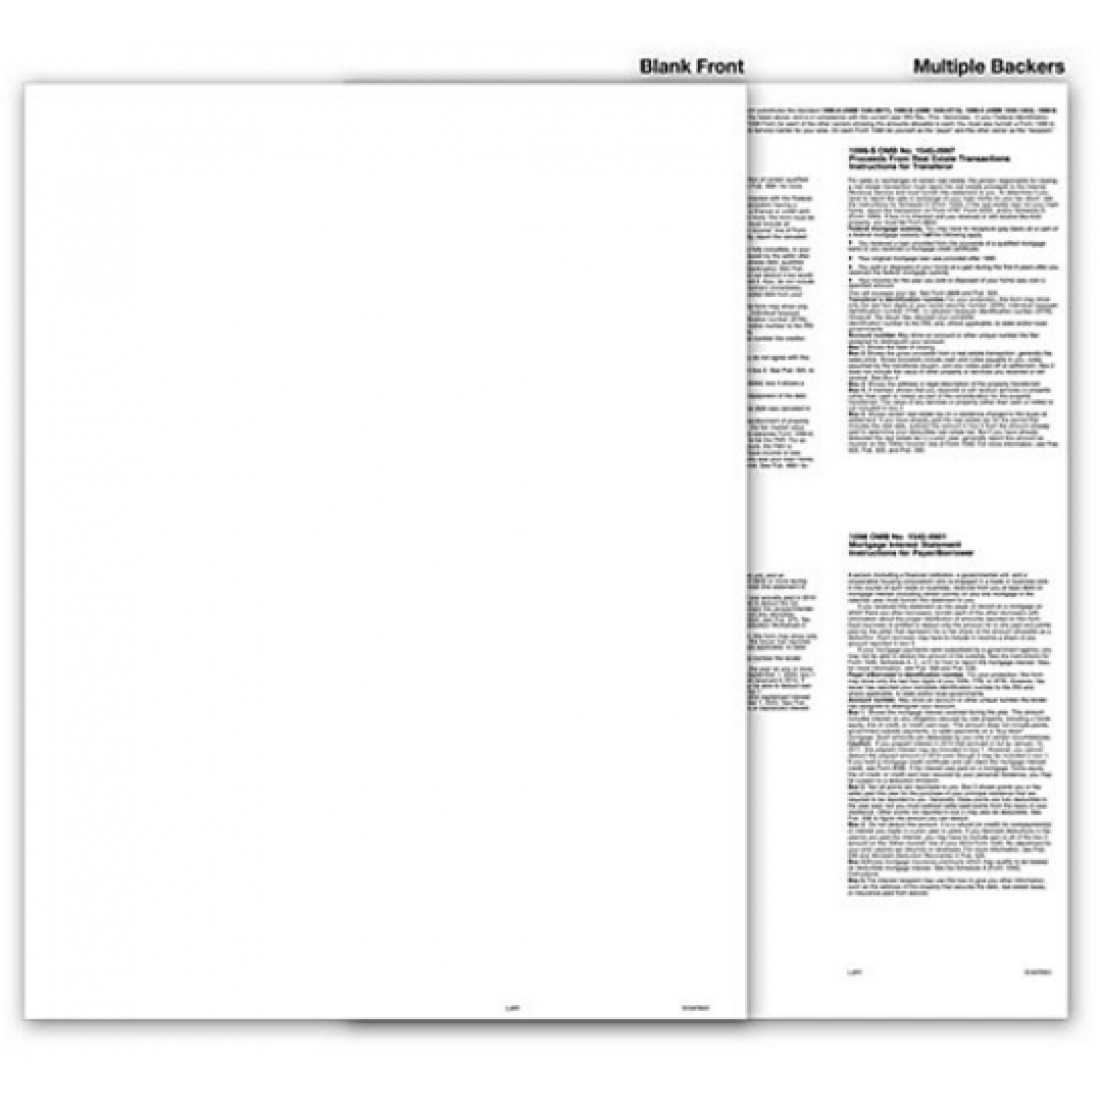 Blank Federal Tax Form 1099 with Multiple Backers